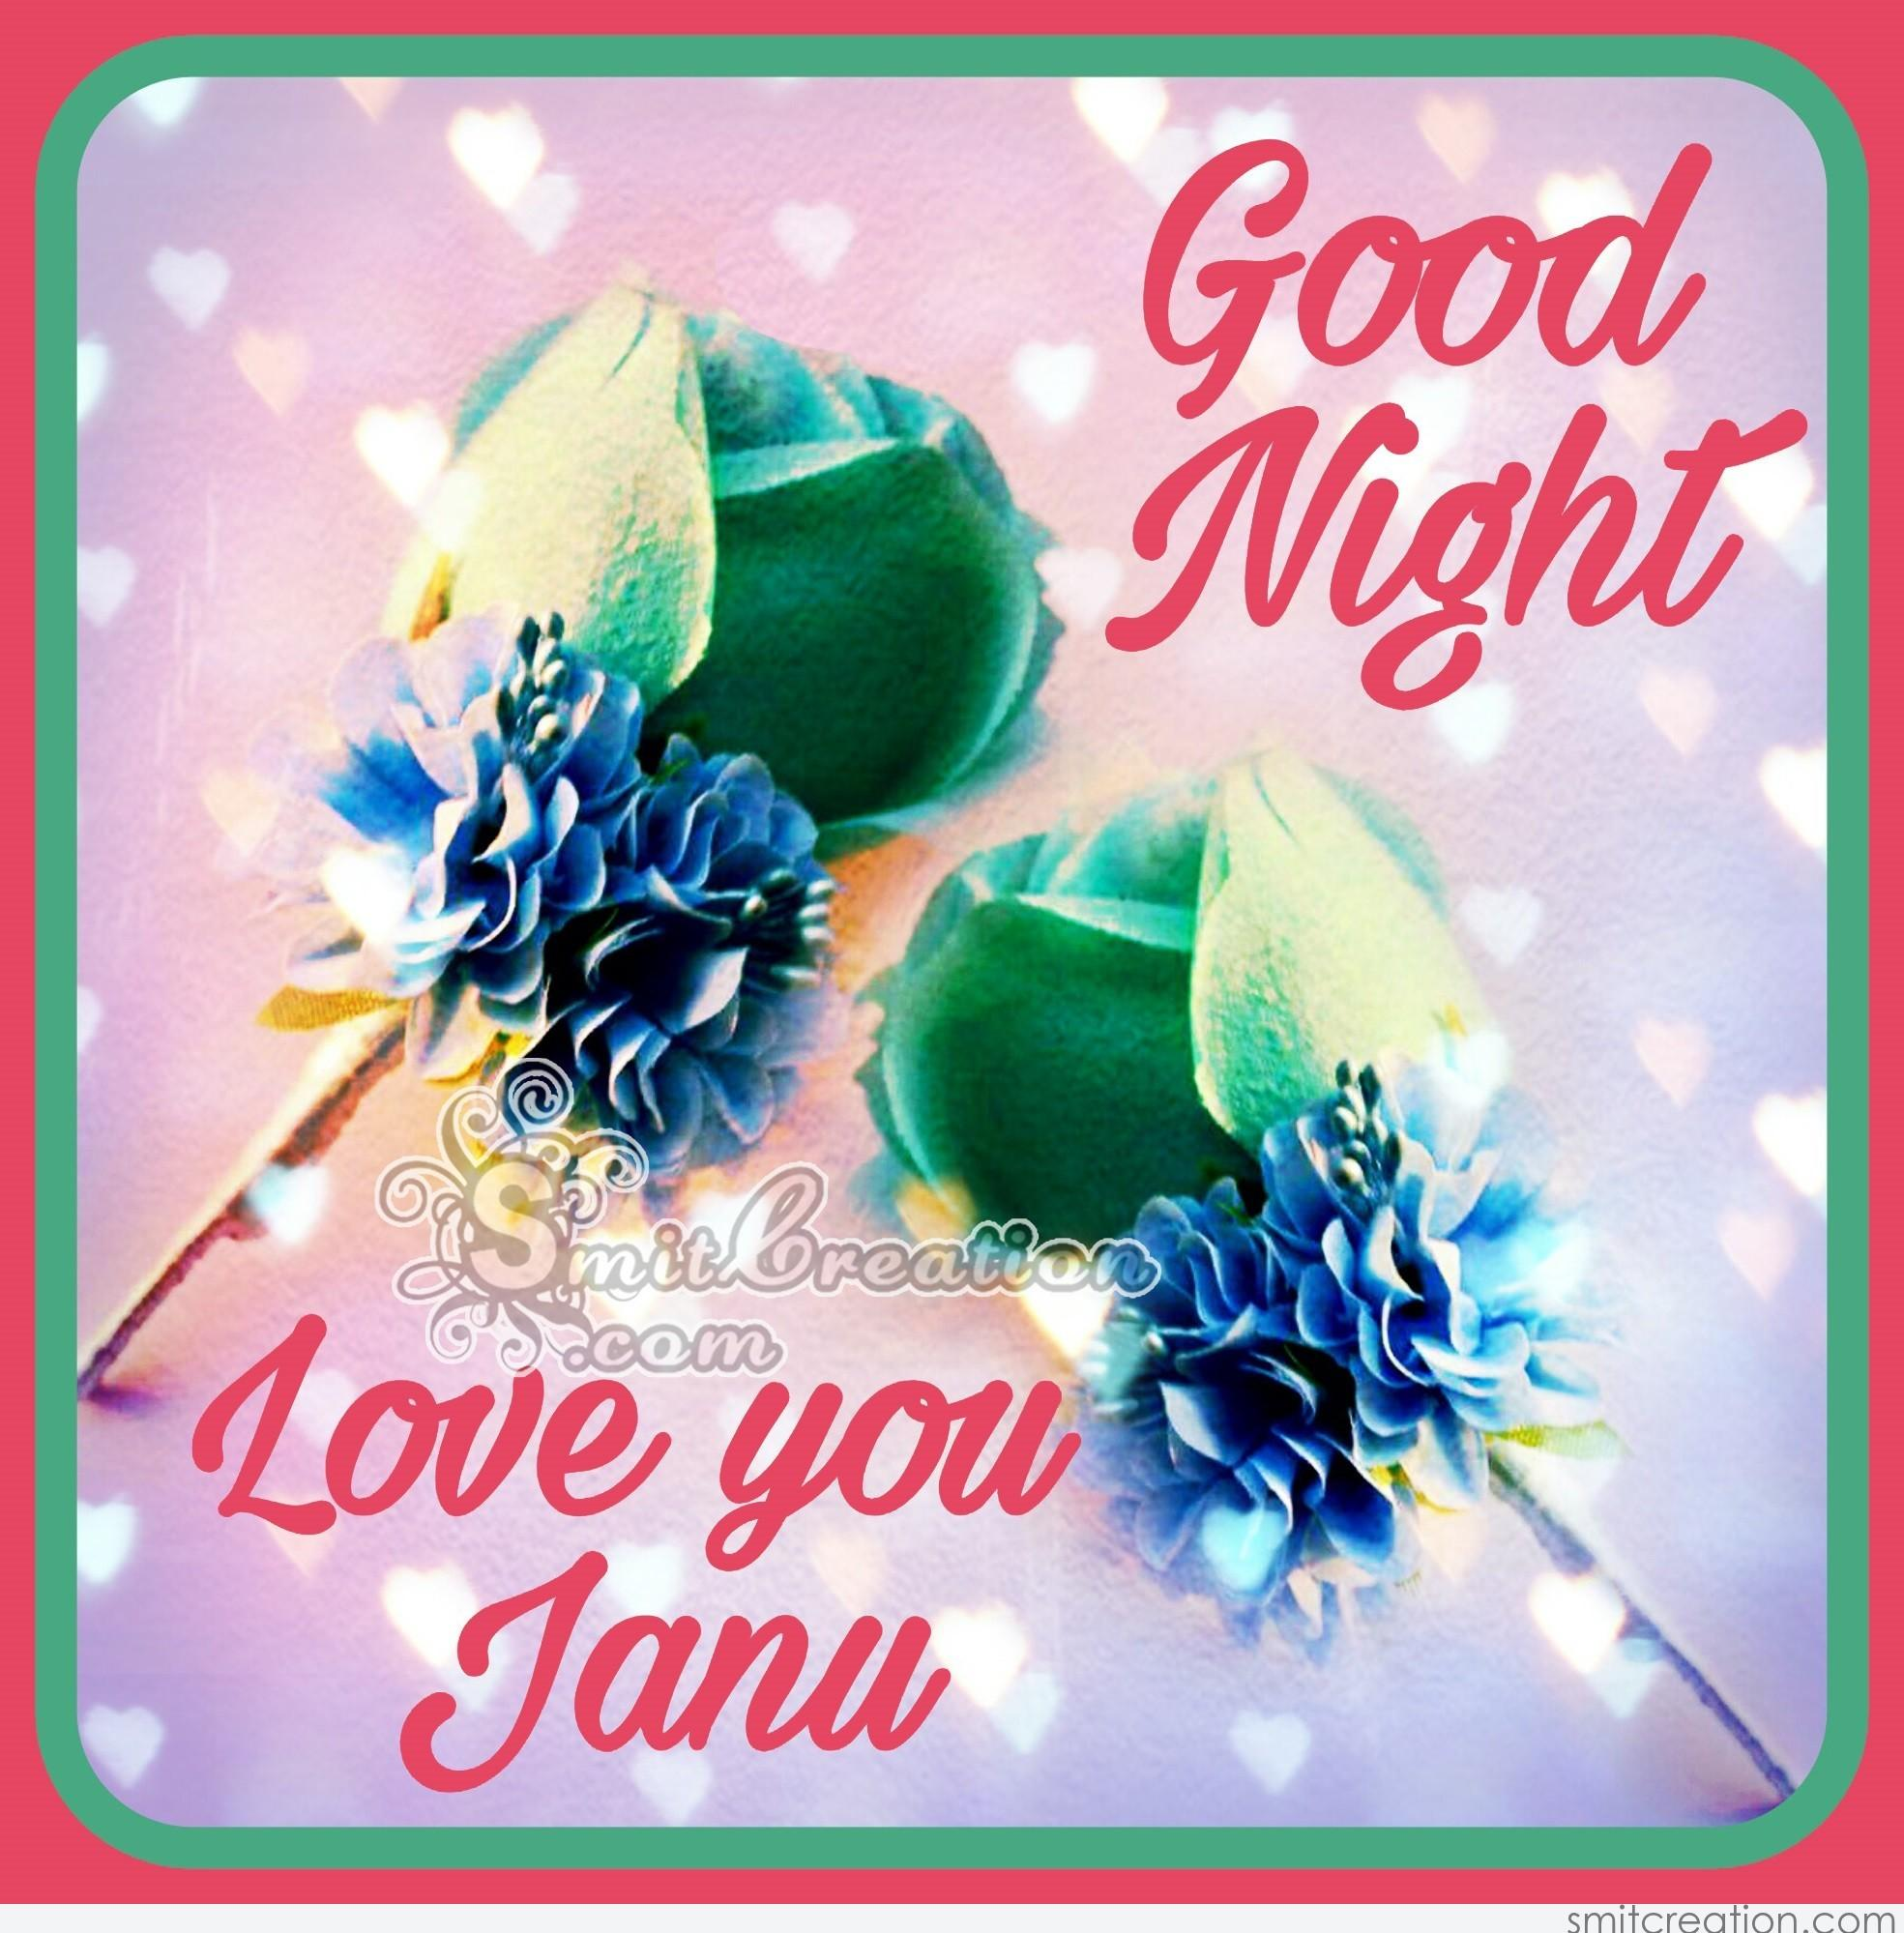 Good night love you janu smitcreation download image m4hsunfo Image collections